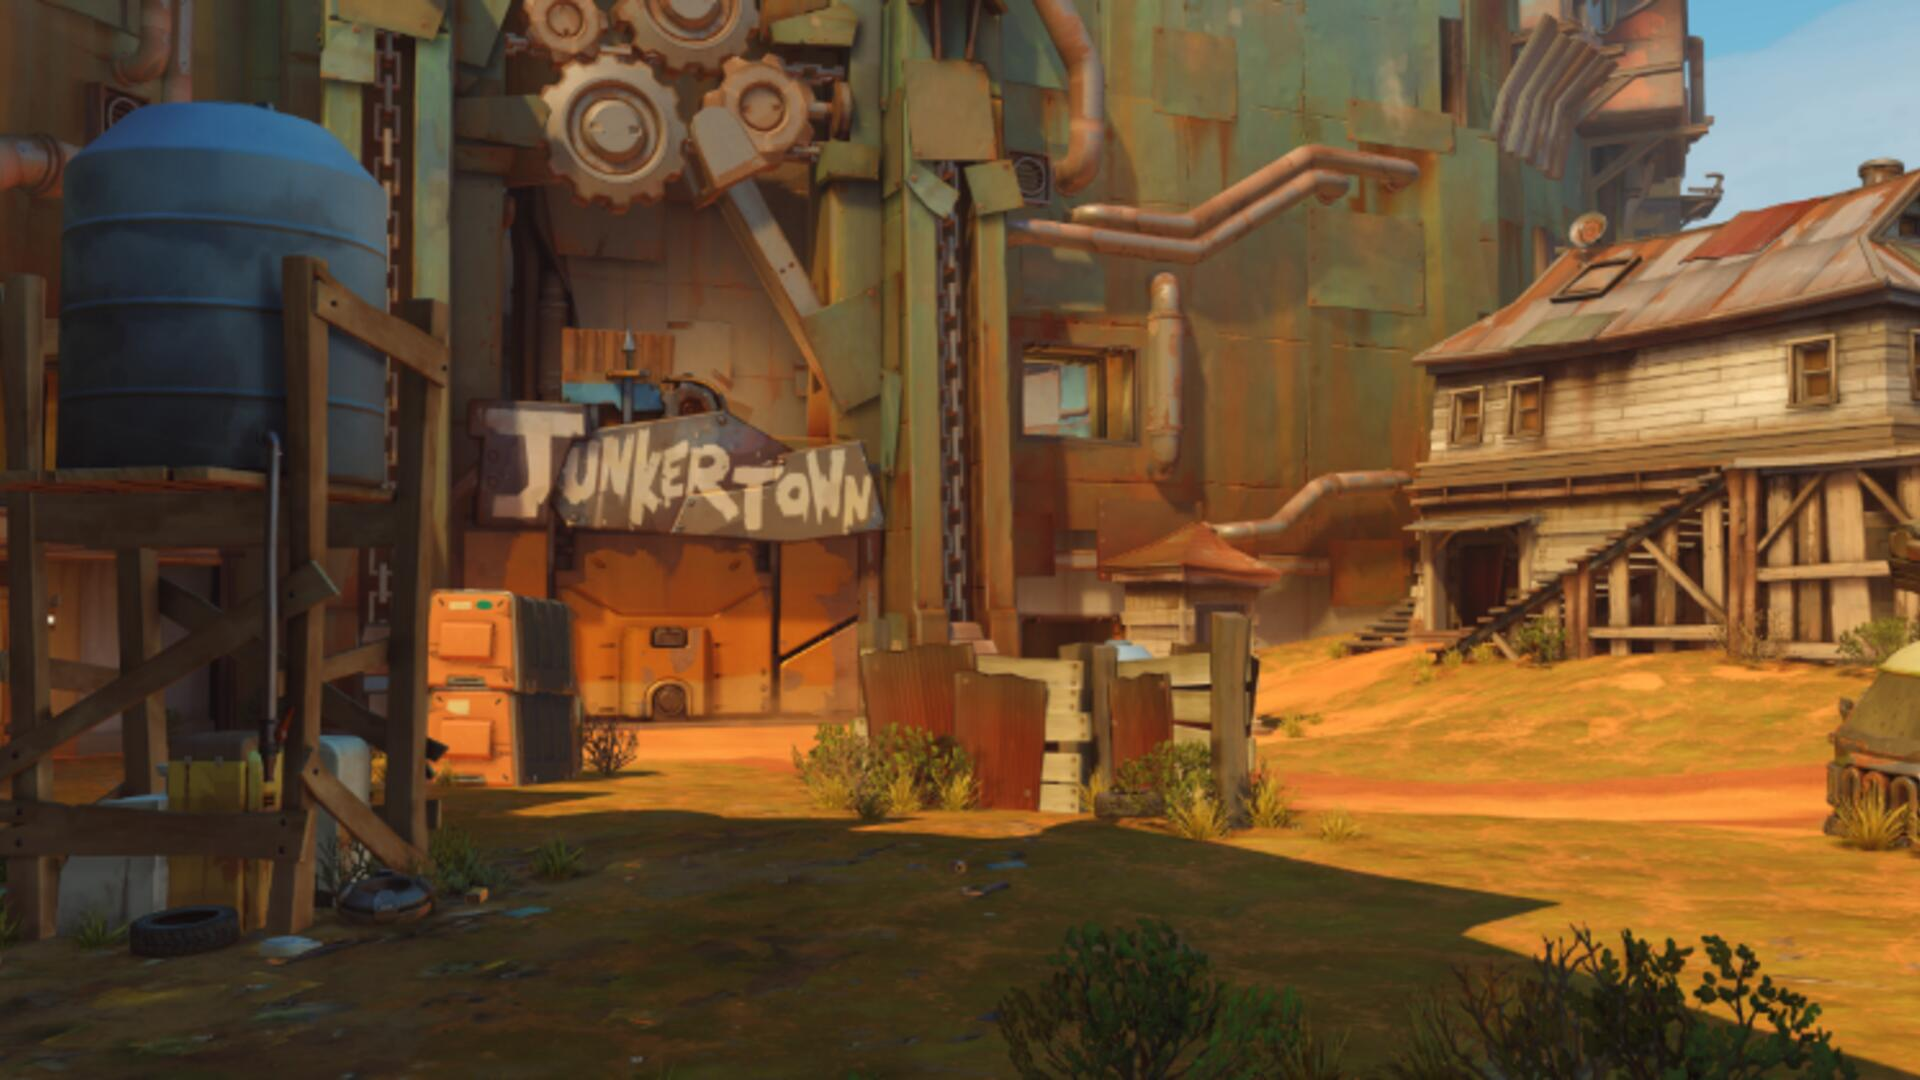 Blizzard Reveals New Overwatch Map, Junkertown, and a Potential New Character